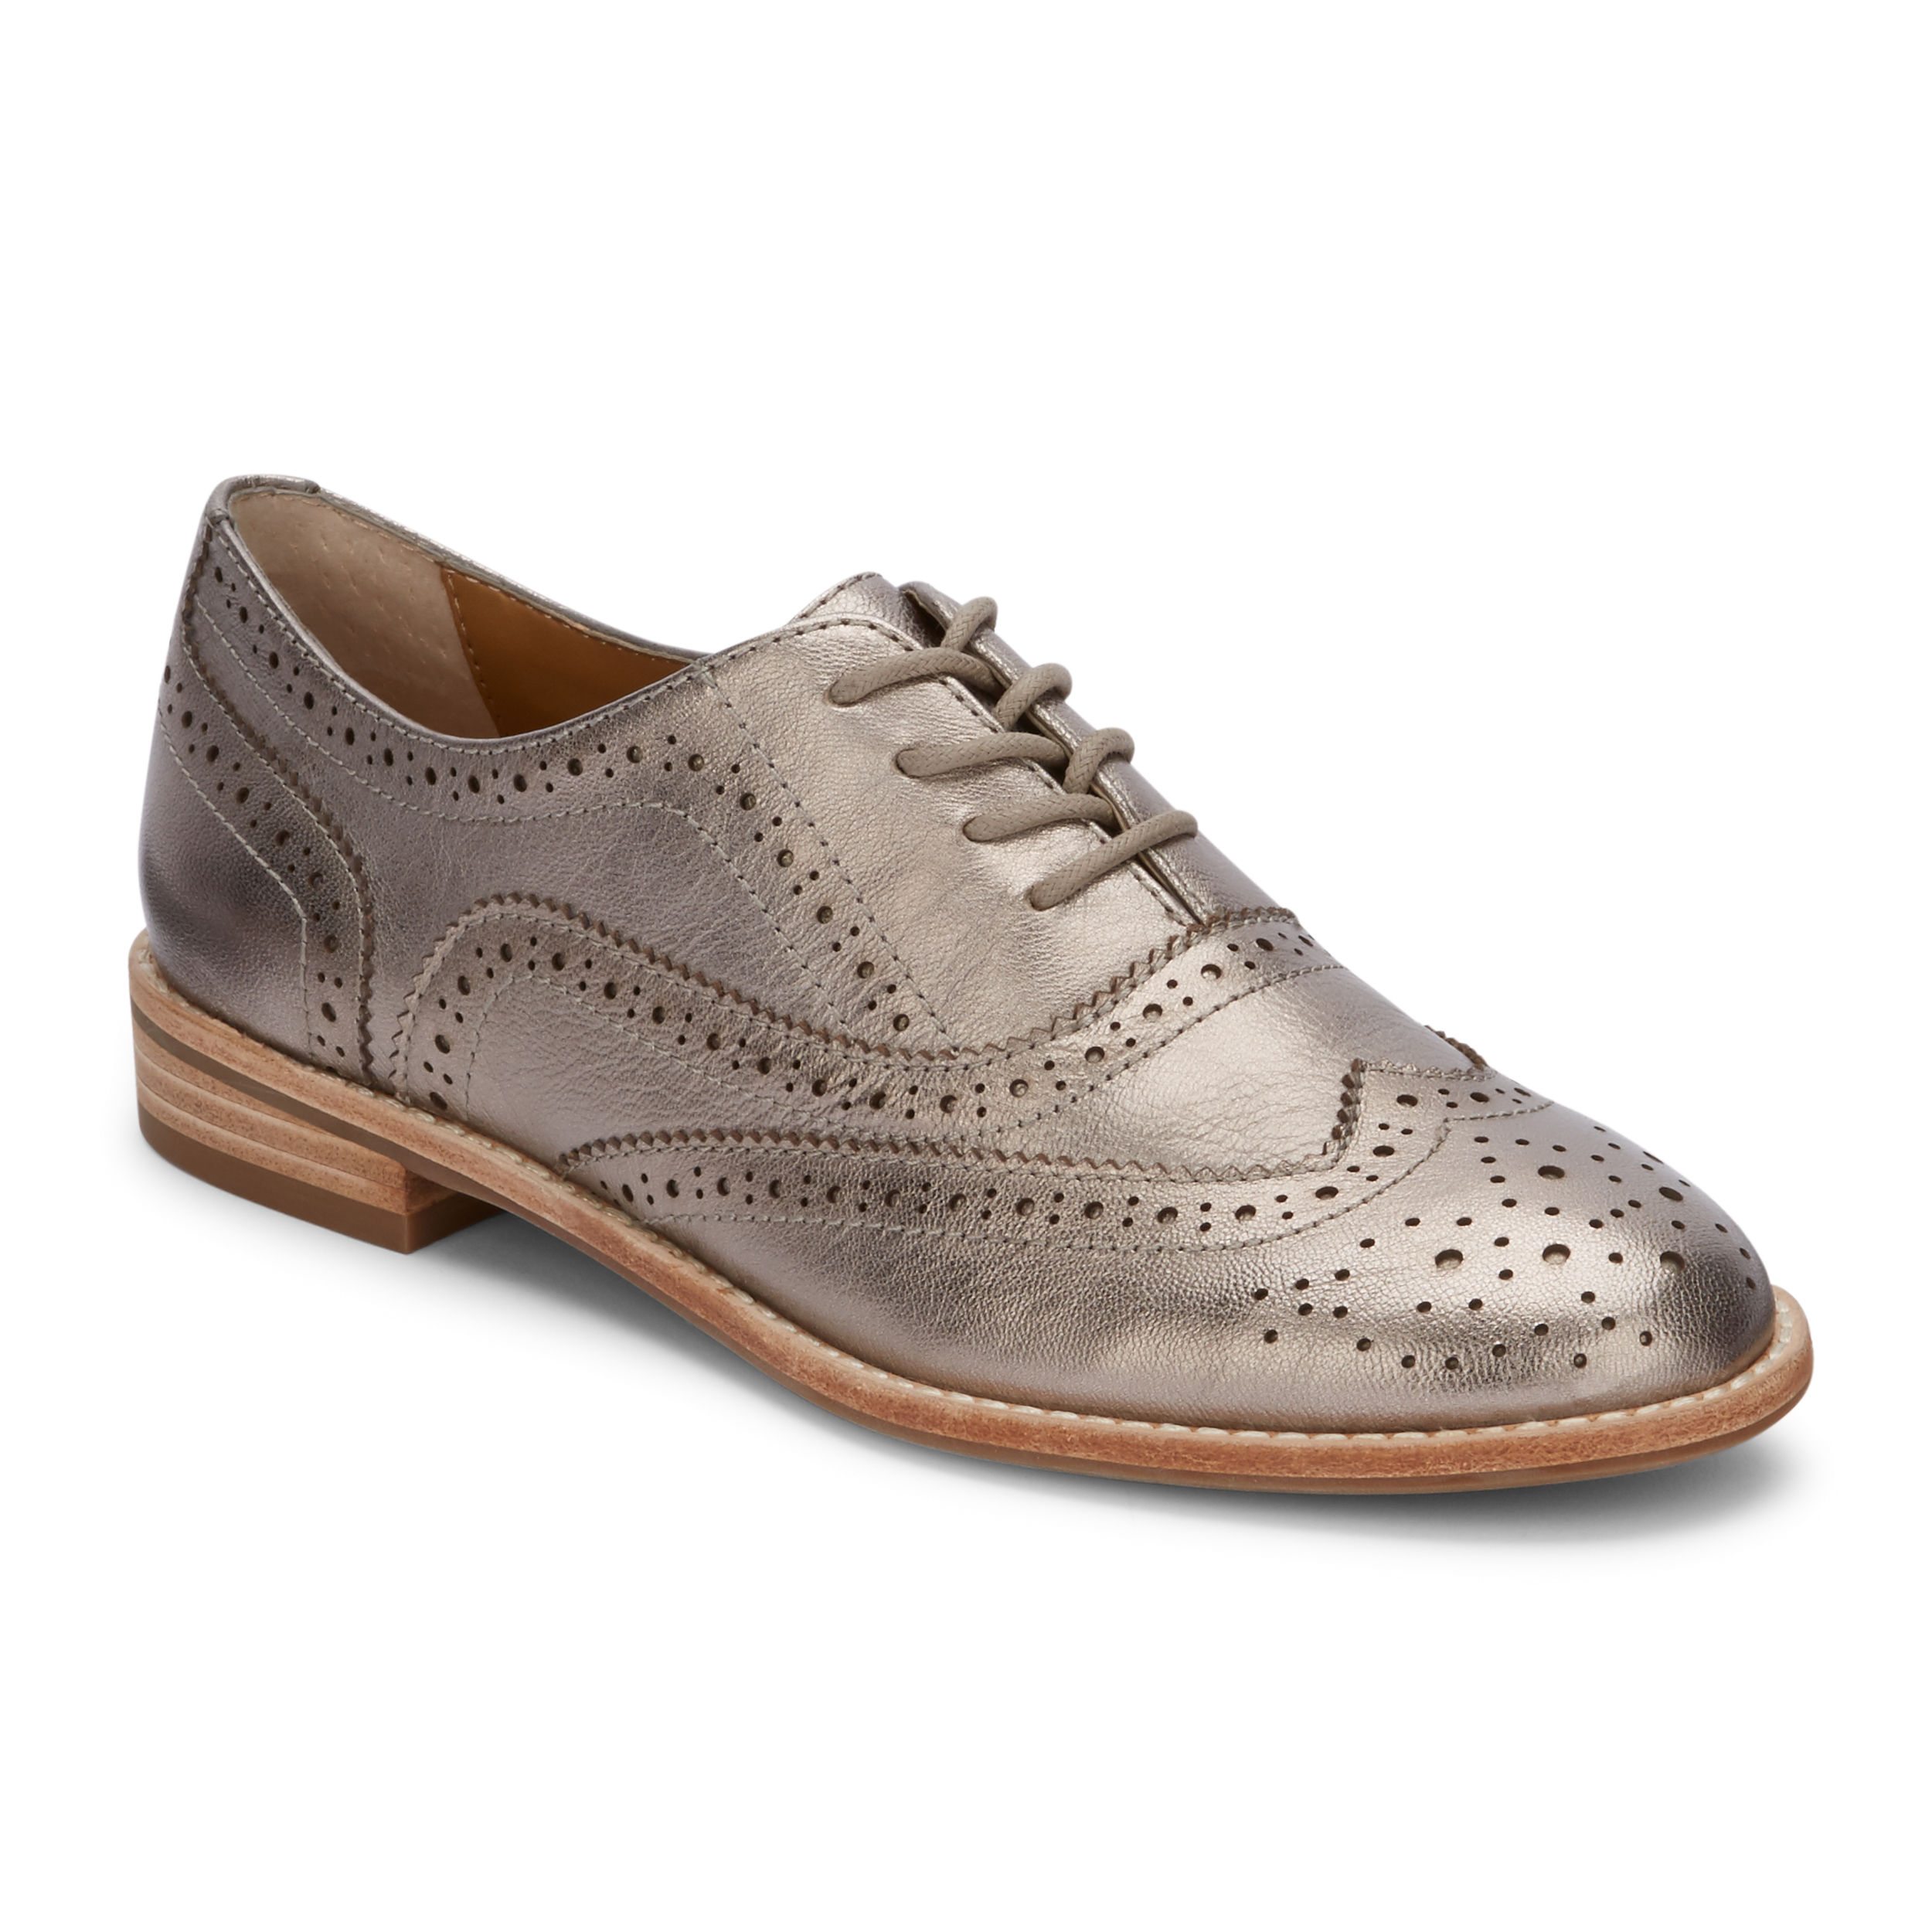 Women's Erica Genuine Leather Wingtip Oxford Shoe Pewter